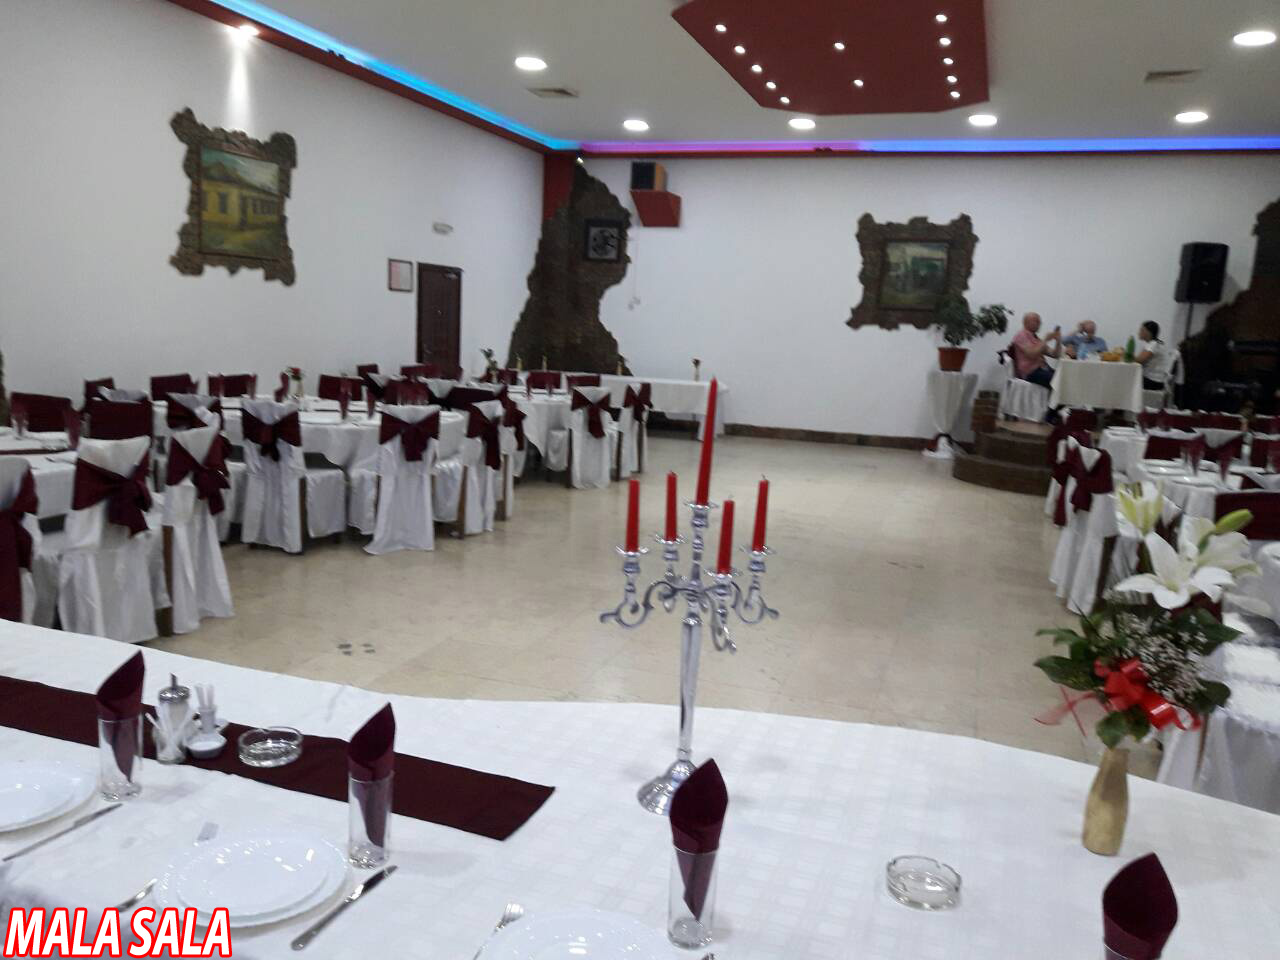 GRAND HALL KACAREVO AND CAFFE GRILL TICINO Renting halls Pancevo - Photo 2